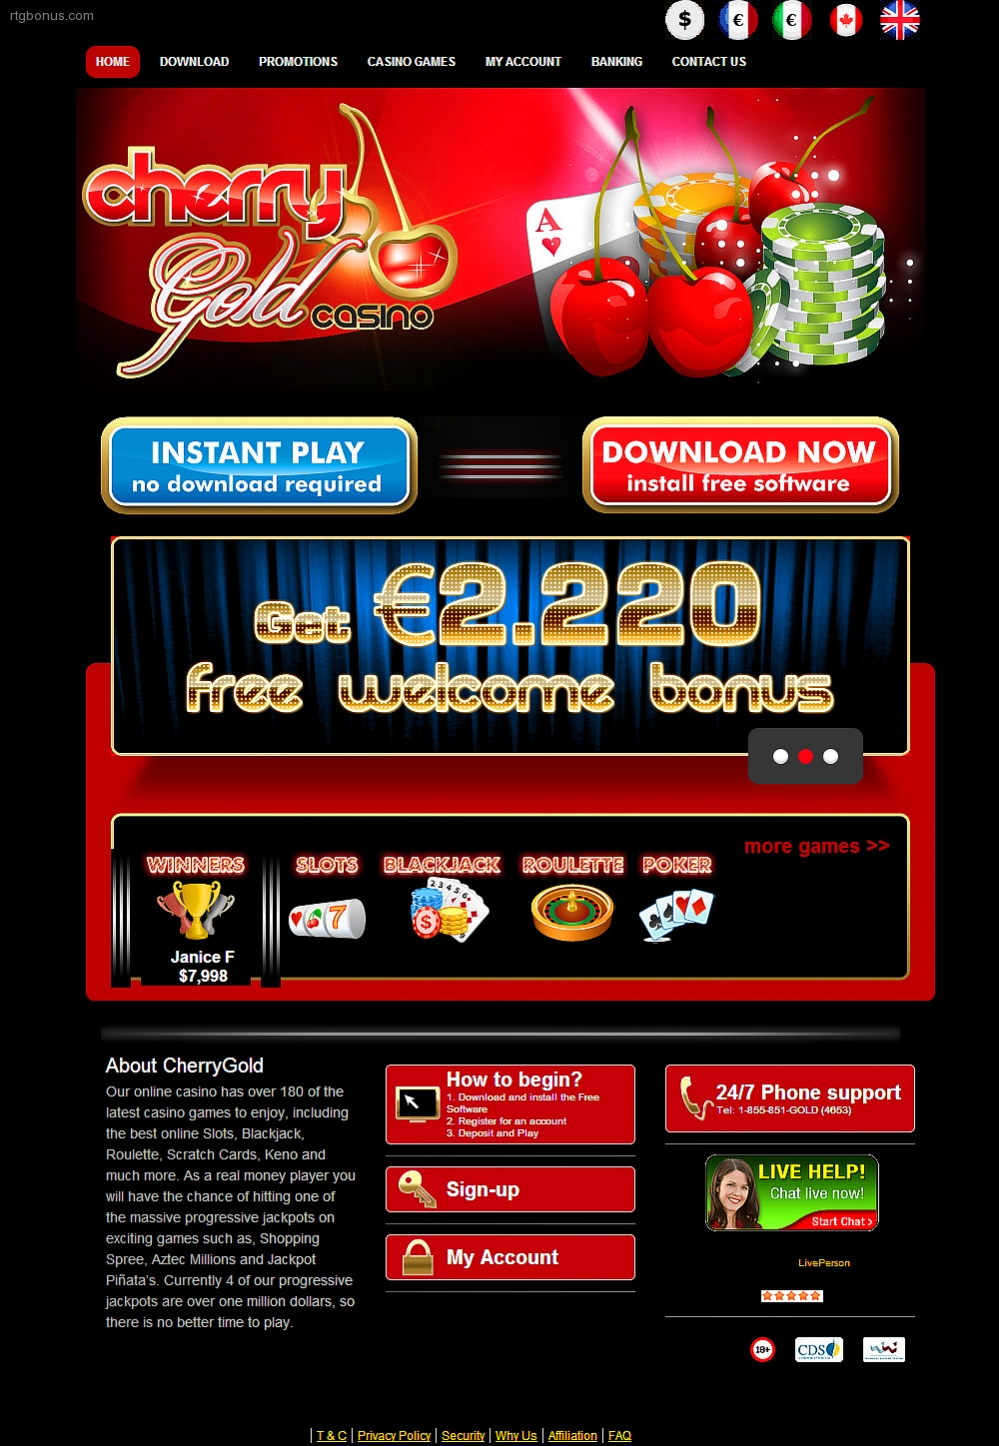 Cherry Gold Casino Rtg Bonuses No Deposit Casino Bonus Codes